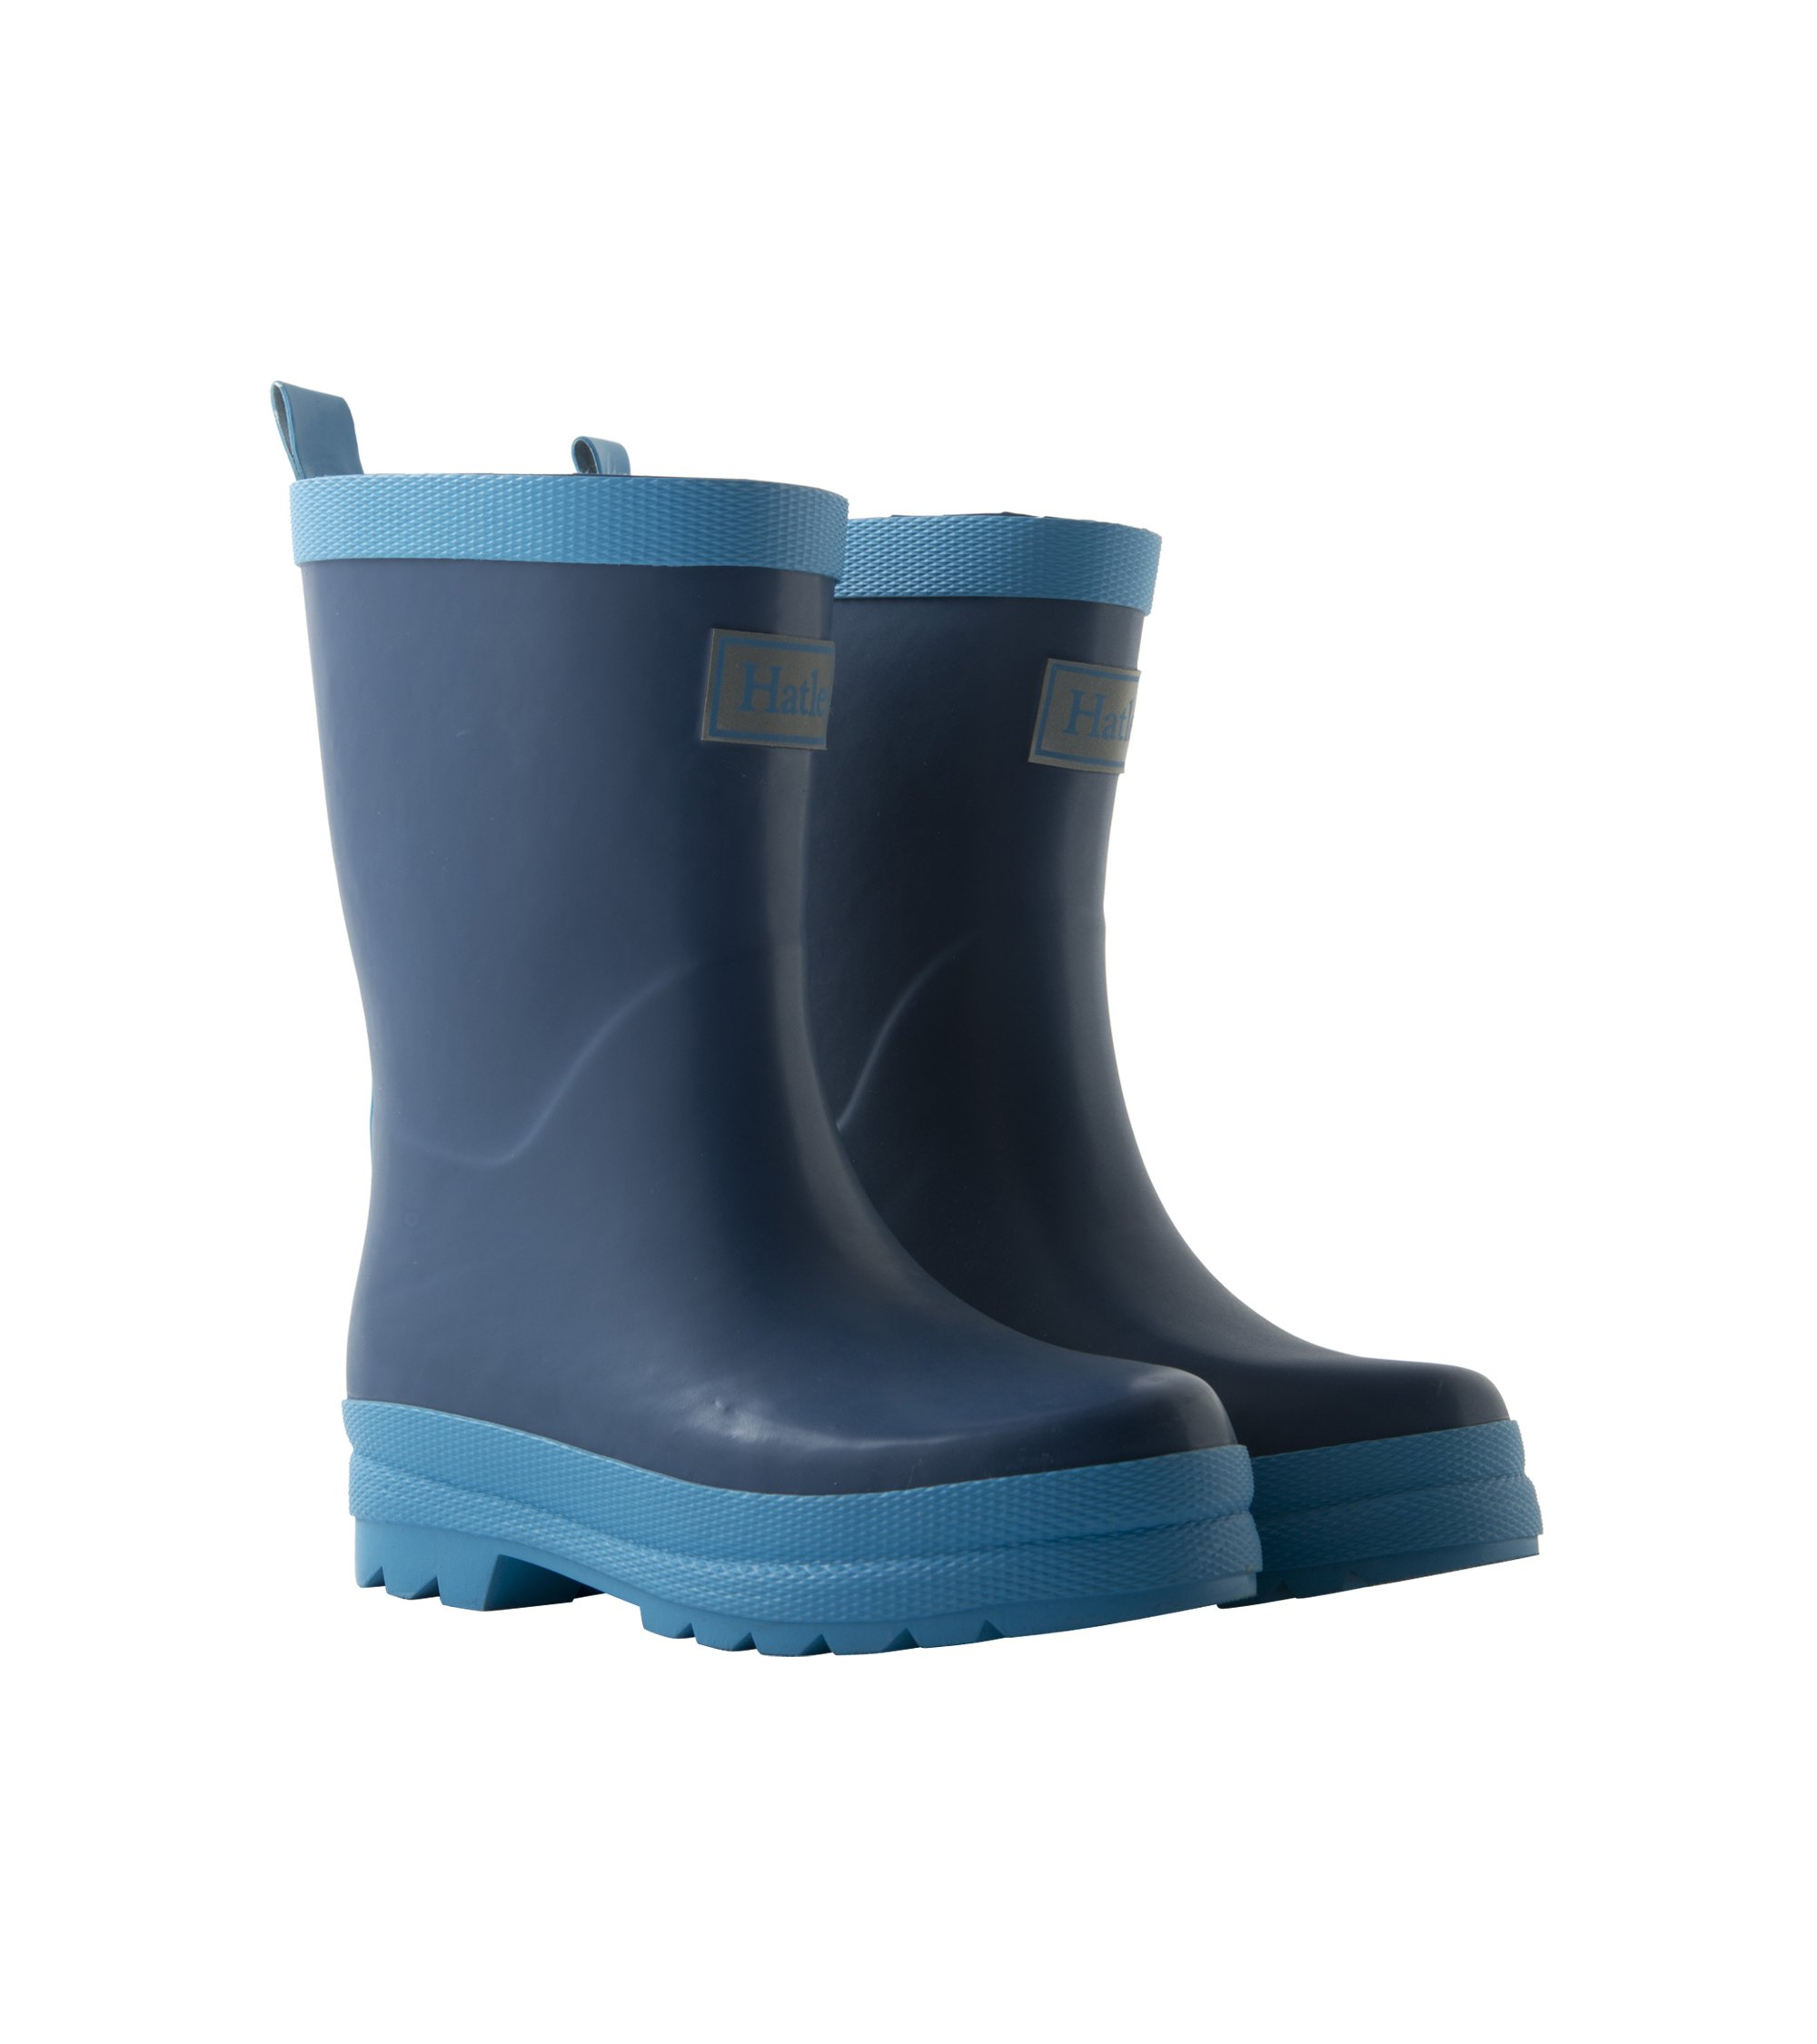 Hatley Classic Boots Rain Accessory, Navy, 9 M US Little Kid